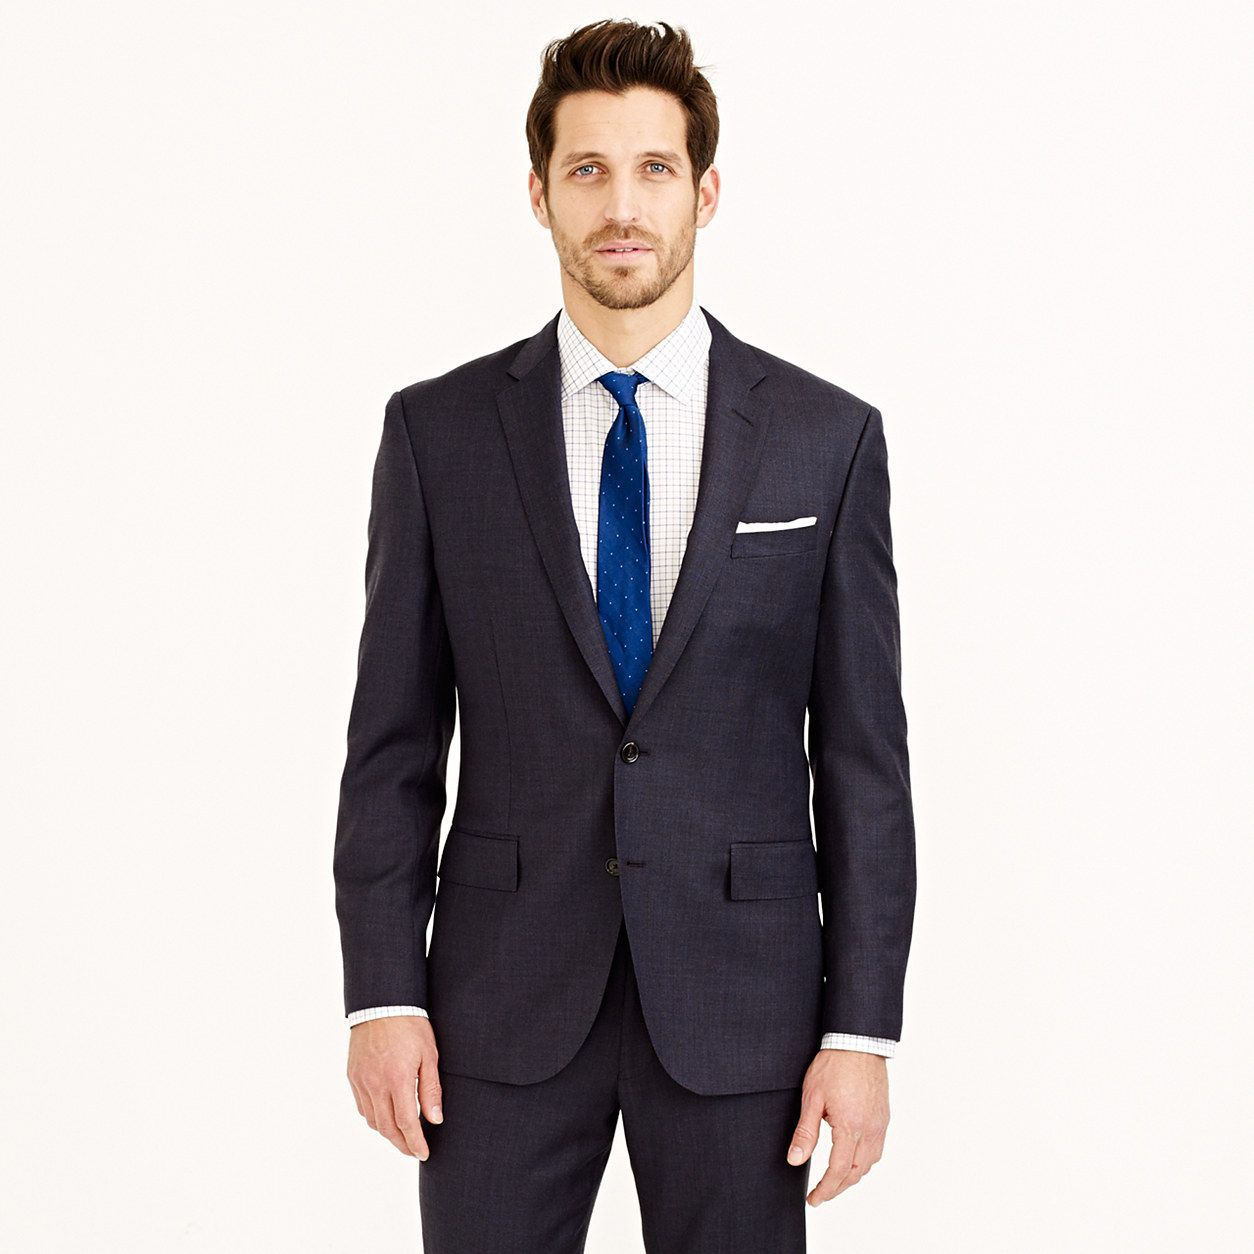 0cdf5d04925cc J.Crew Mens Crosby Suit Jacket With Double Vent In Italian Worsted Wool  (Size 42 Regular)